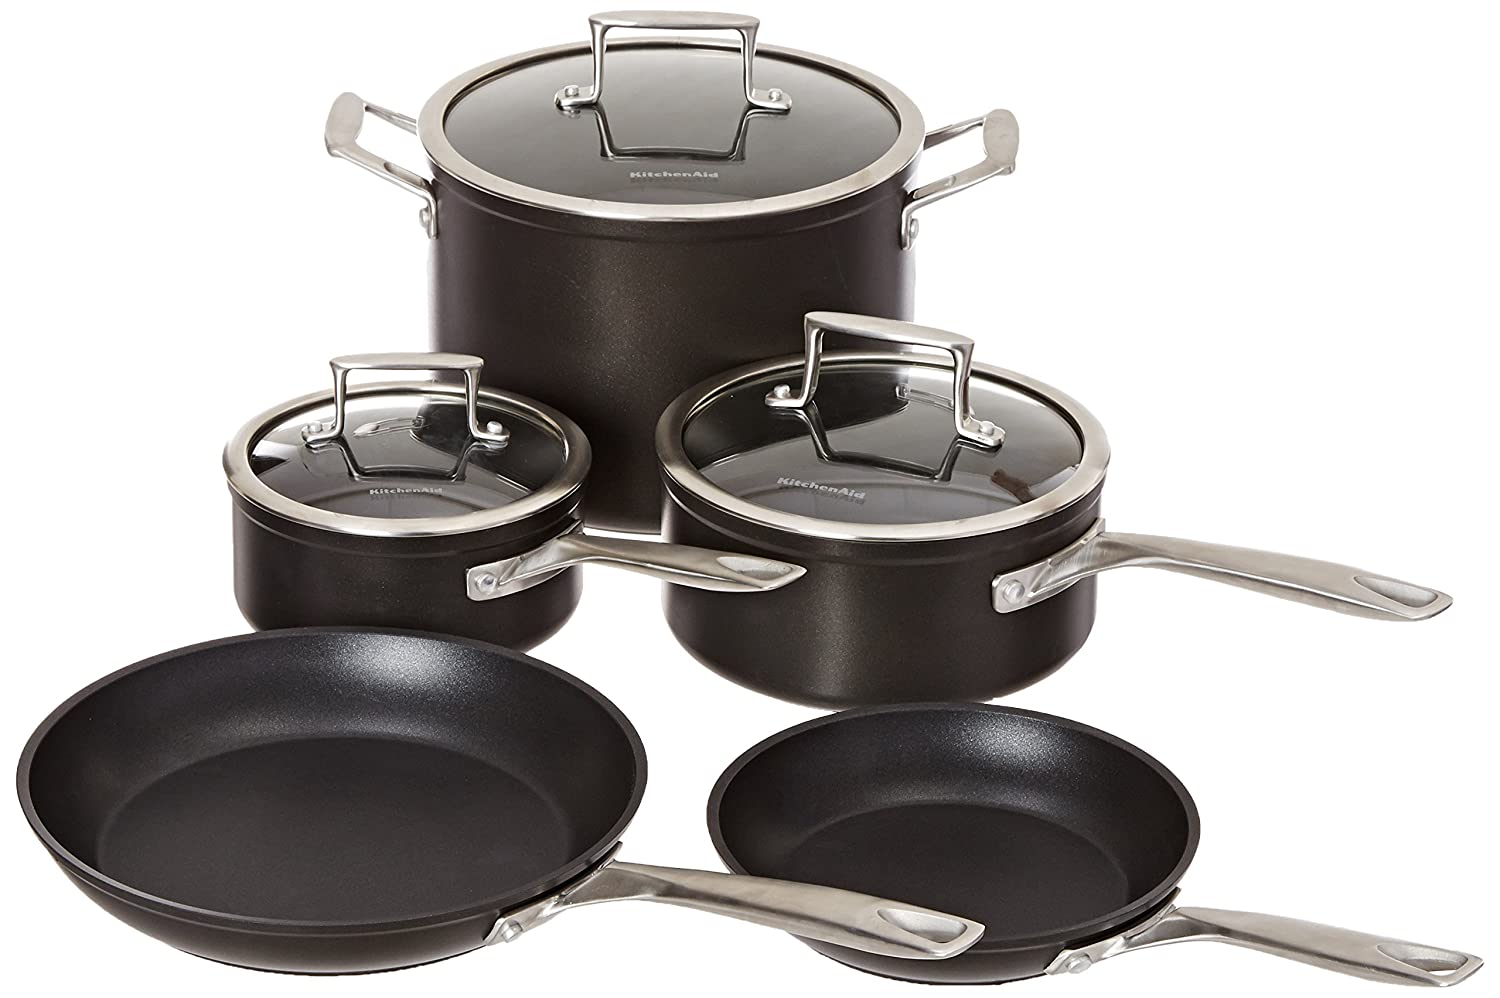 10 Best Hard Anodized Cookware Sets For Home Cooks